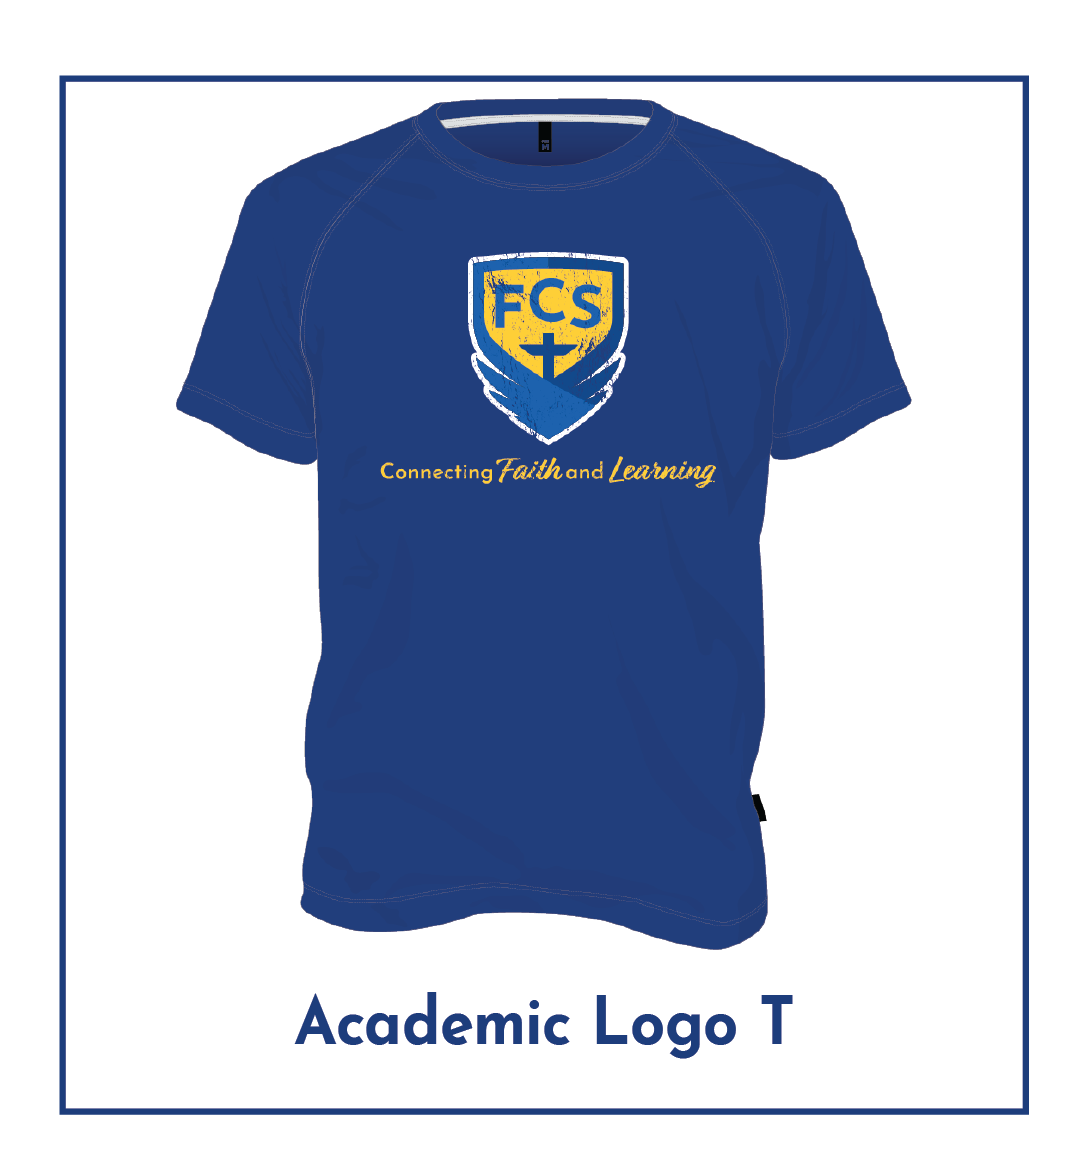 academic-logo-t-01.png